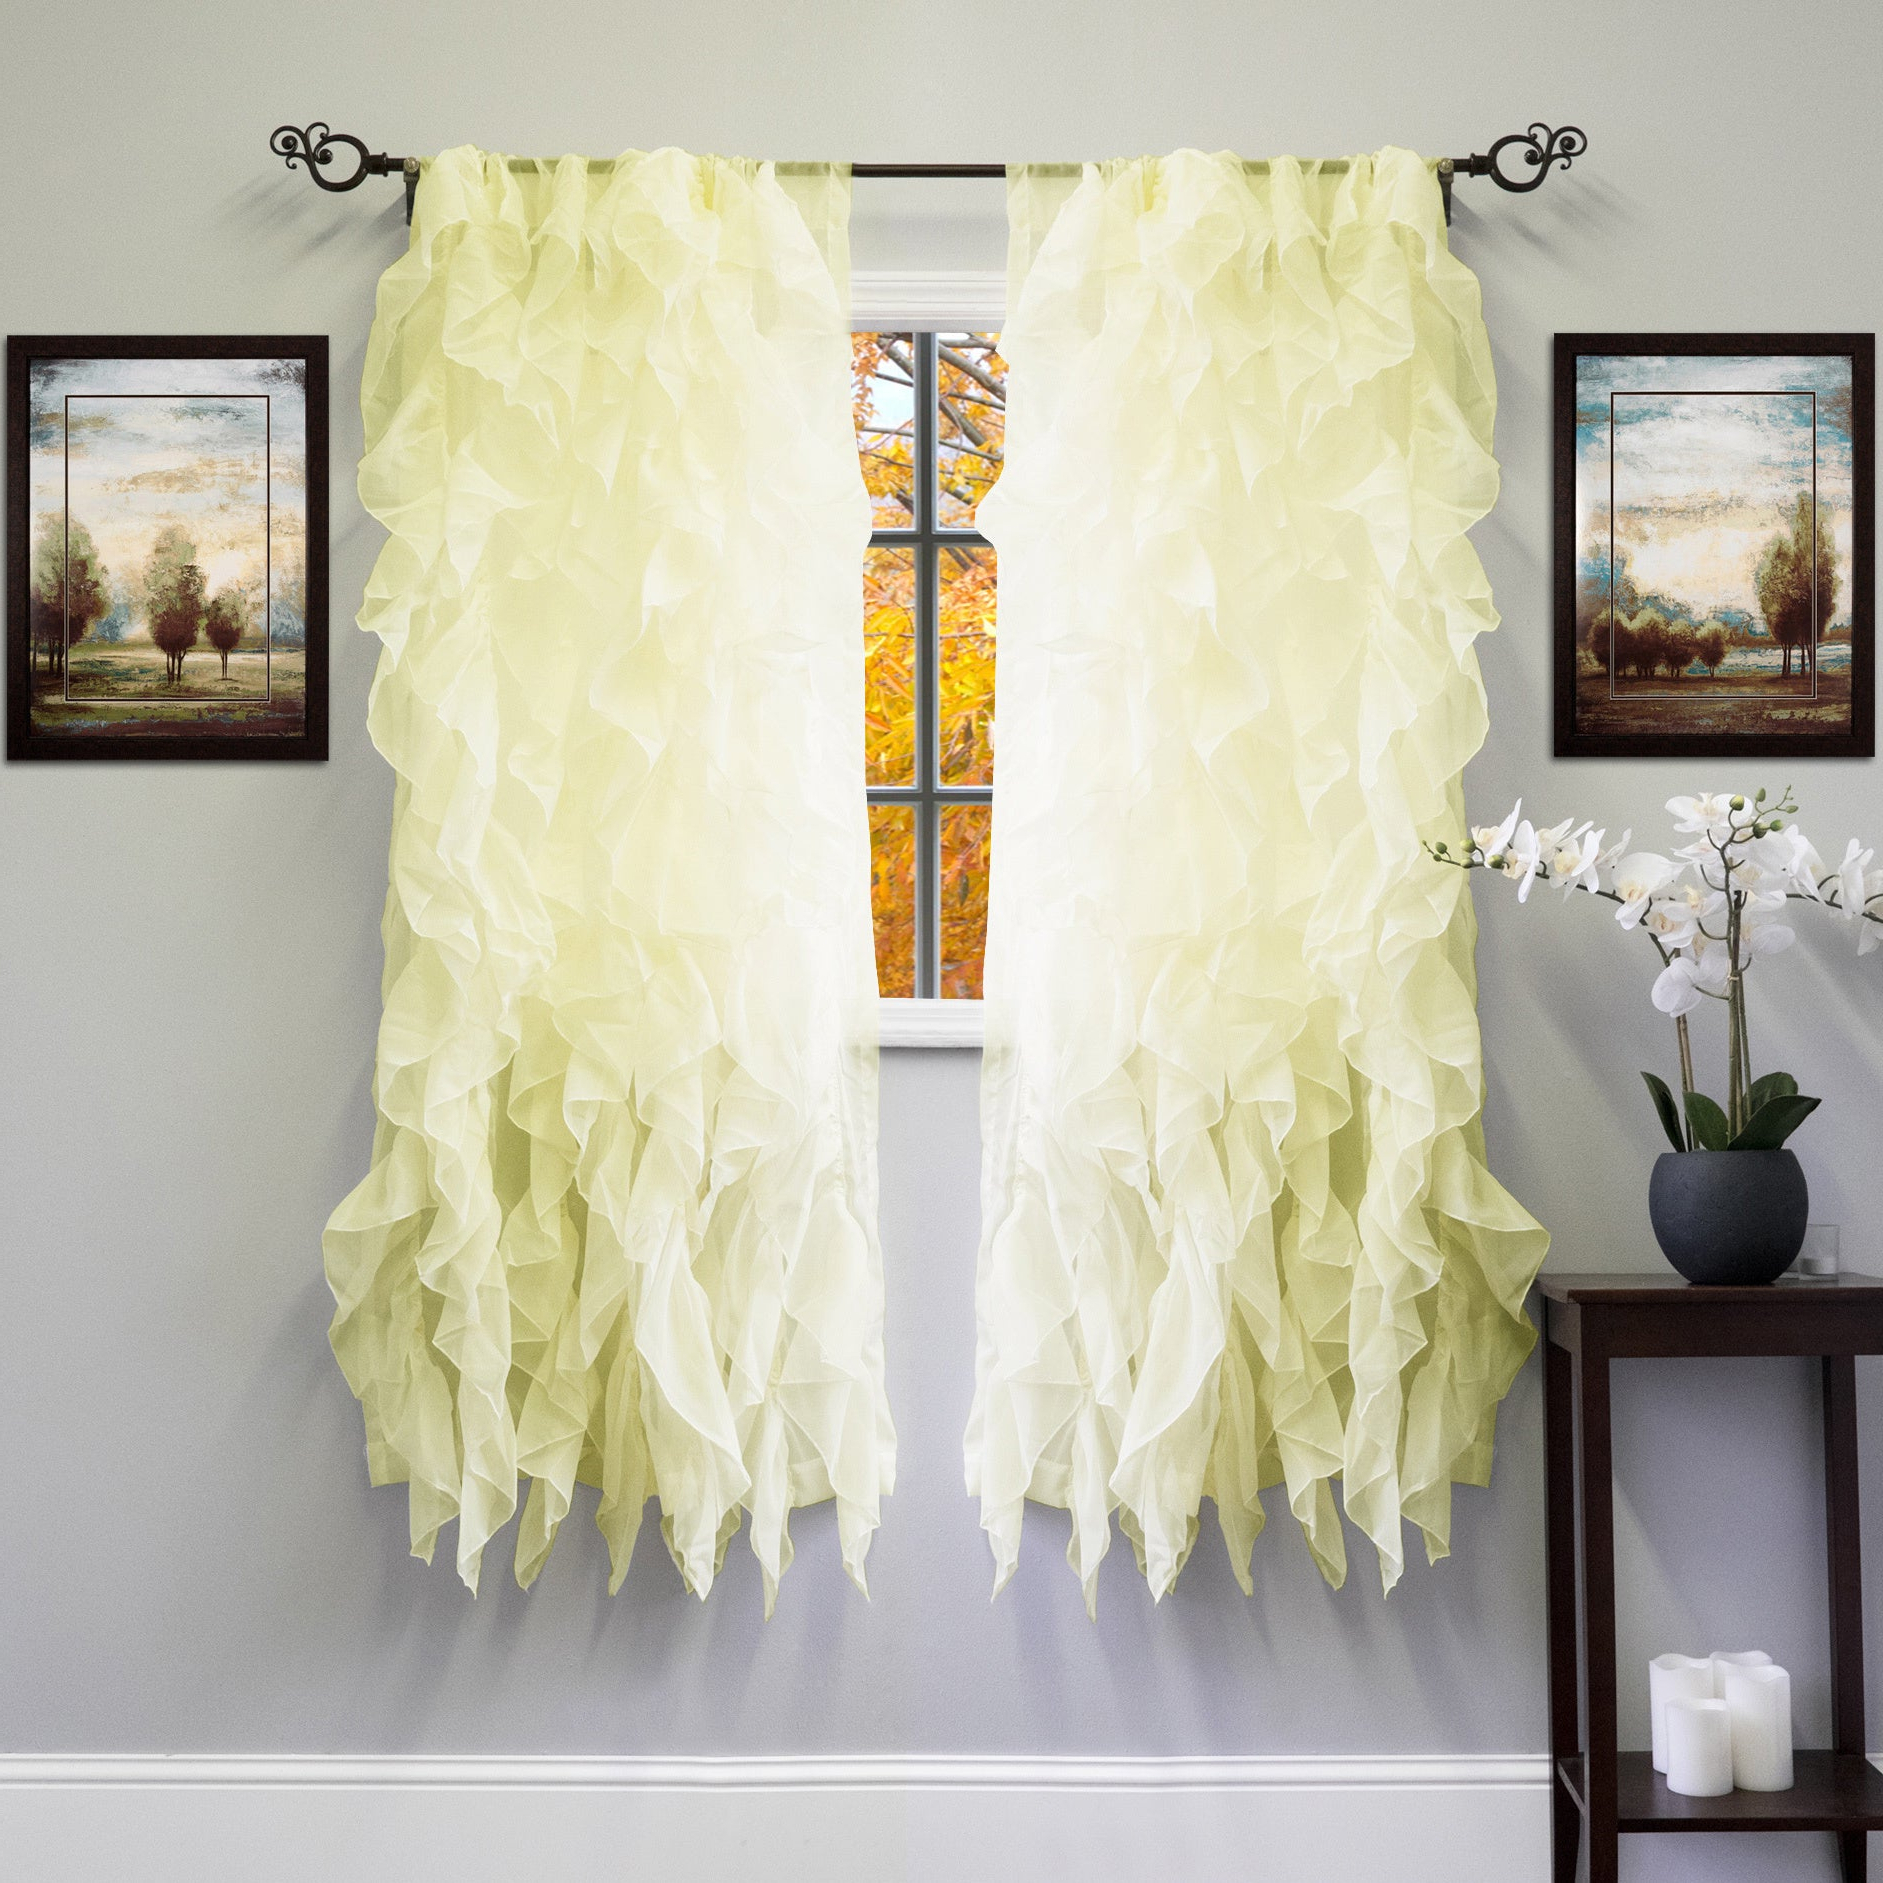 2021 Silver Vertical Ruffled Waterfall Valance And Curtain Tiers Pertaining To Voile 50 X 63 Vertical Ruffle Tier Window Curtain Panel – 50 X (View 15 of 20)